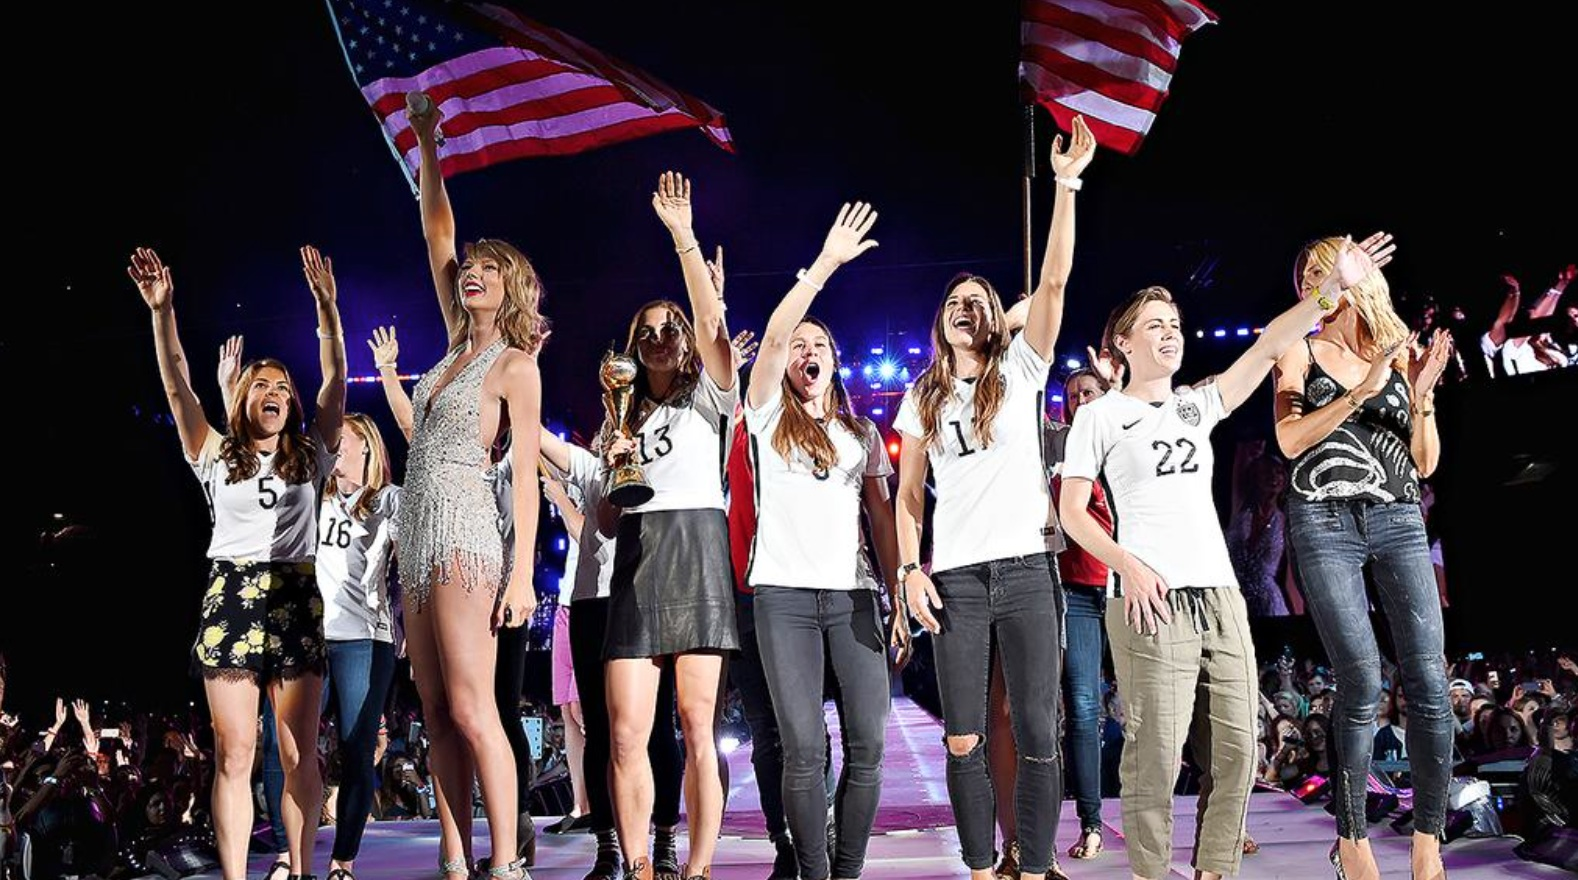 Taylor Swift upped the awesome on her 1989 tour with the U.S. Women's National Soccer Team